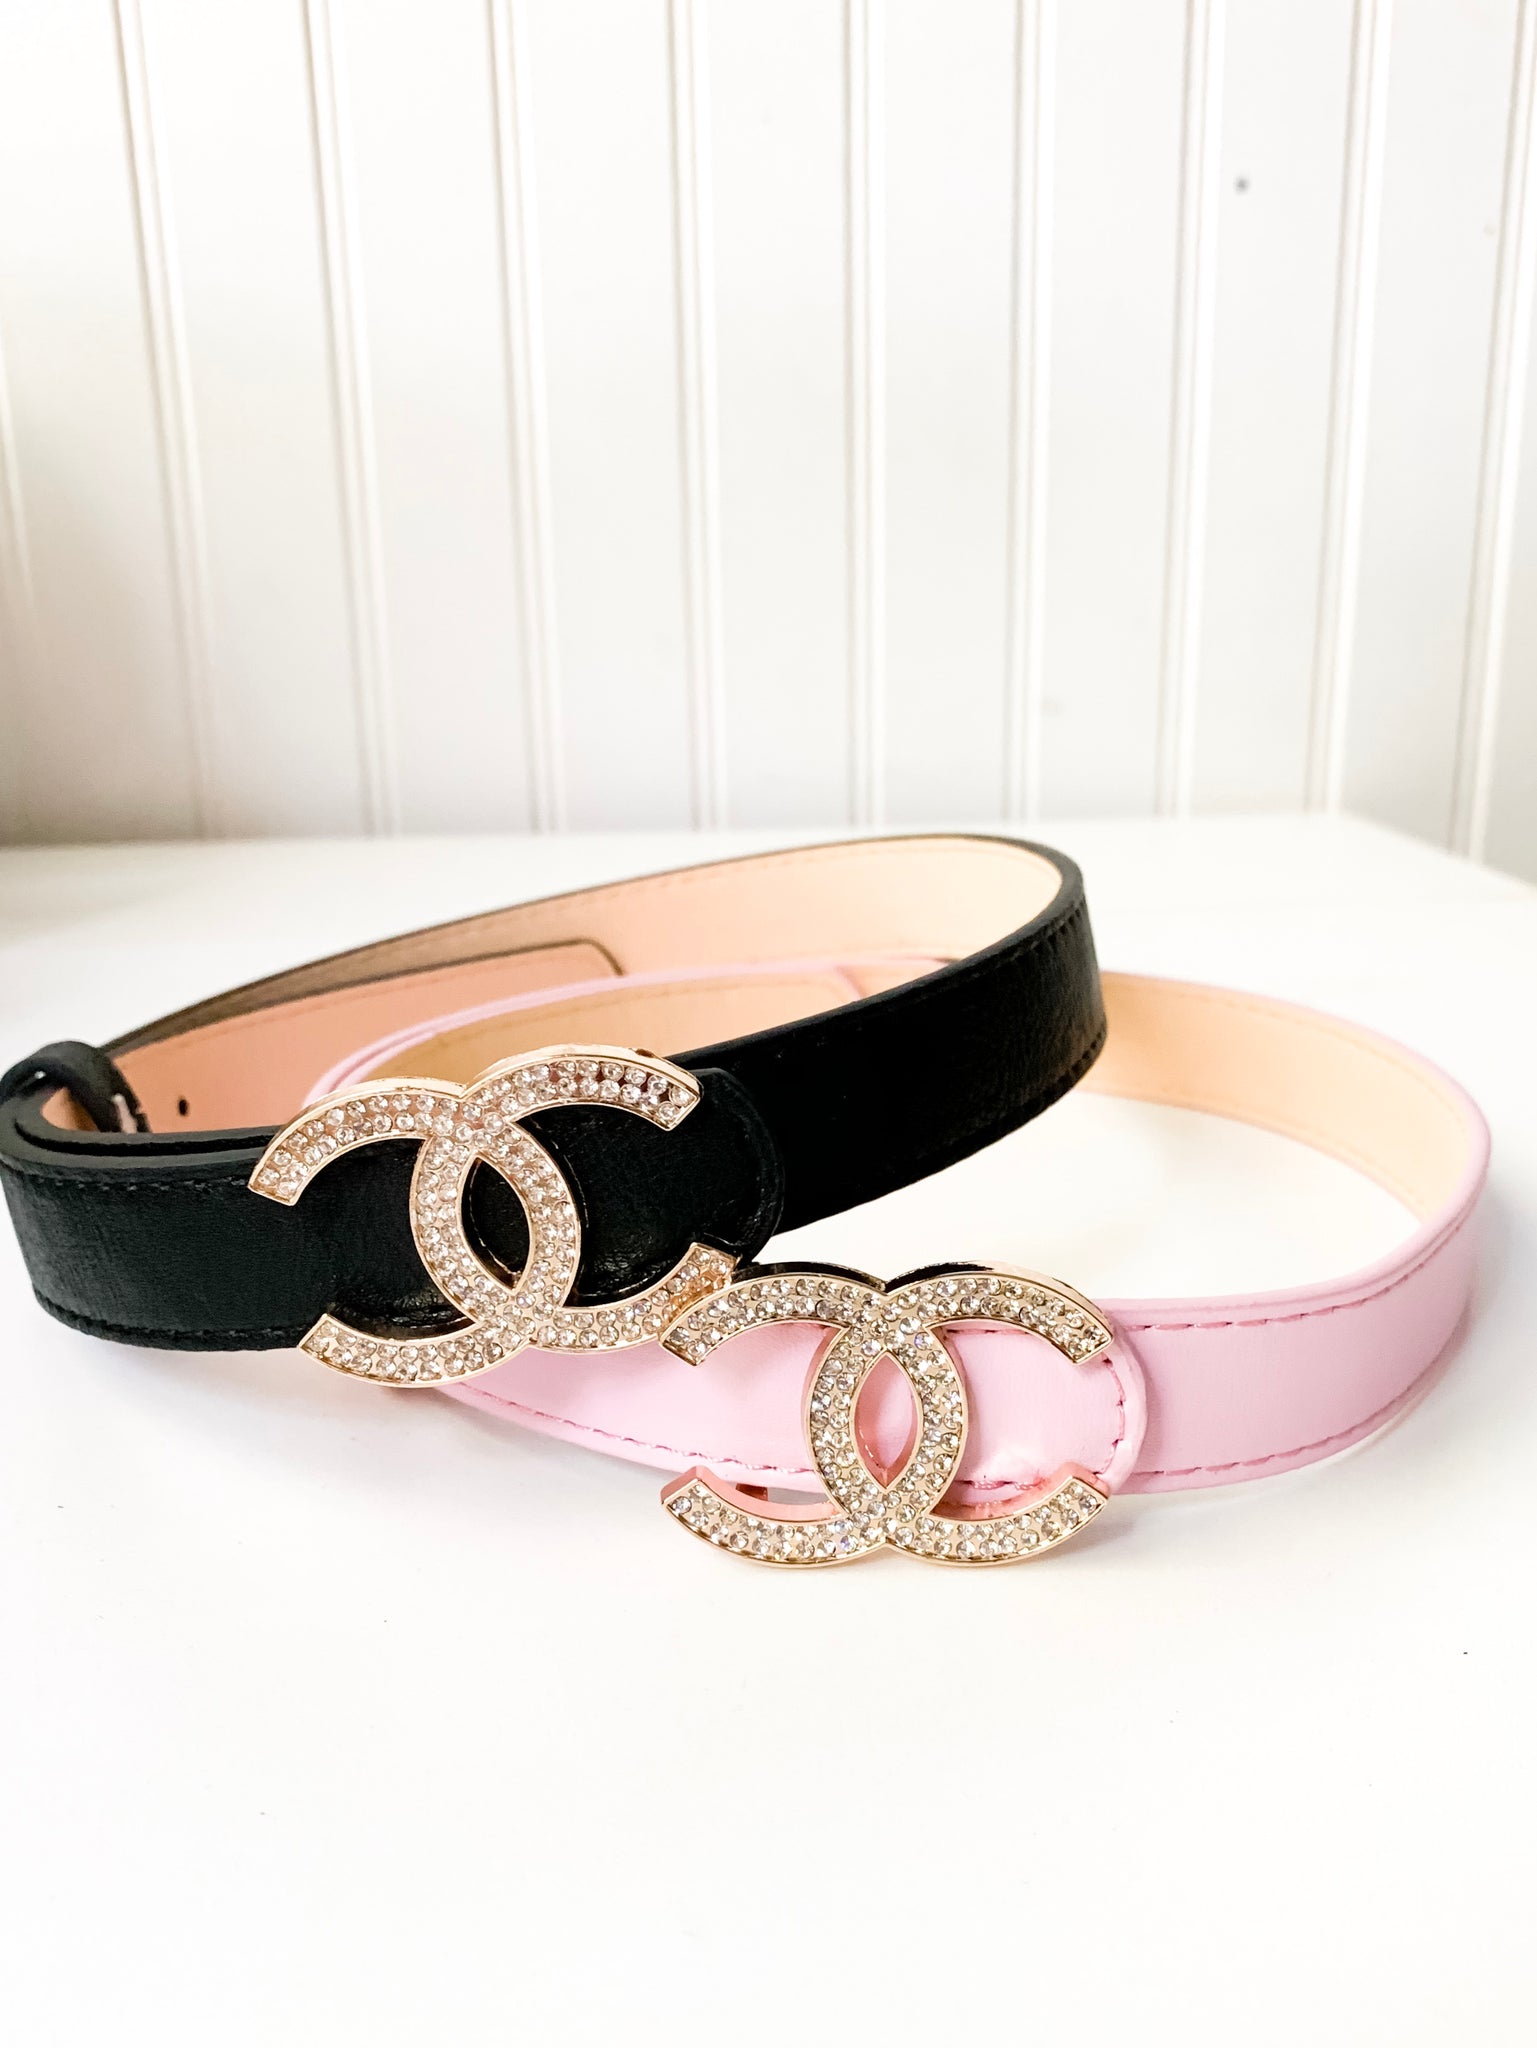 Cici Belts (2 color options)